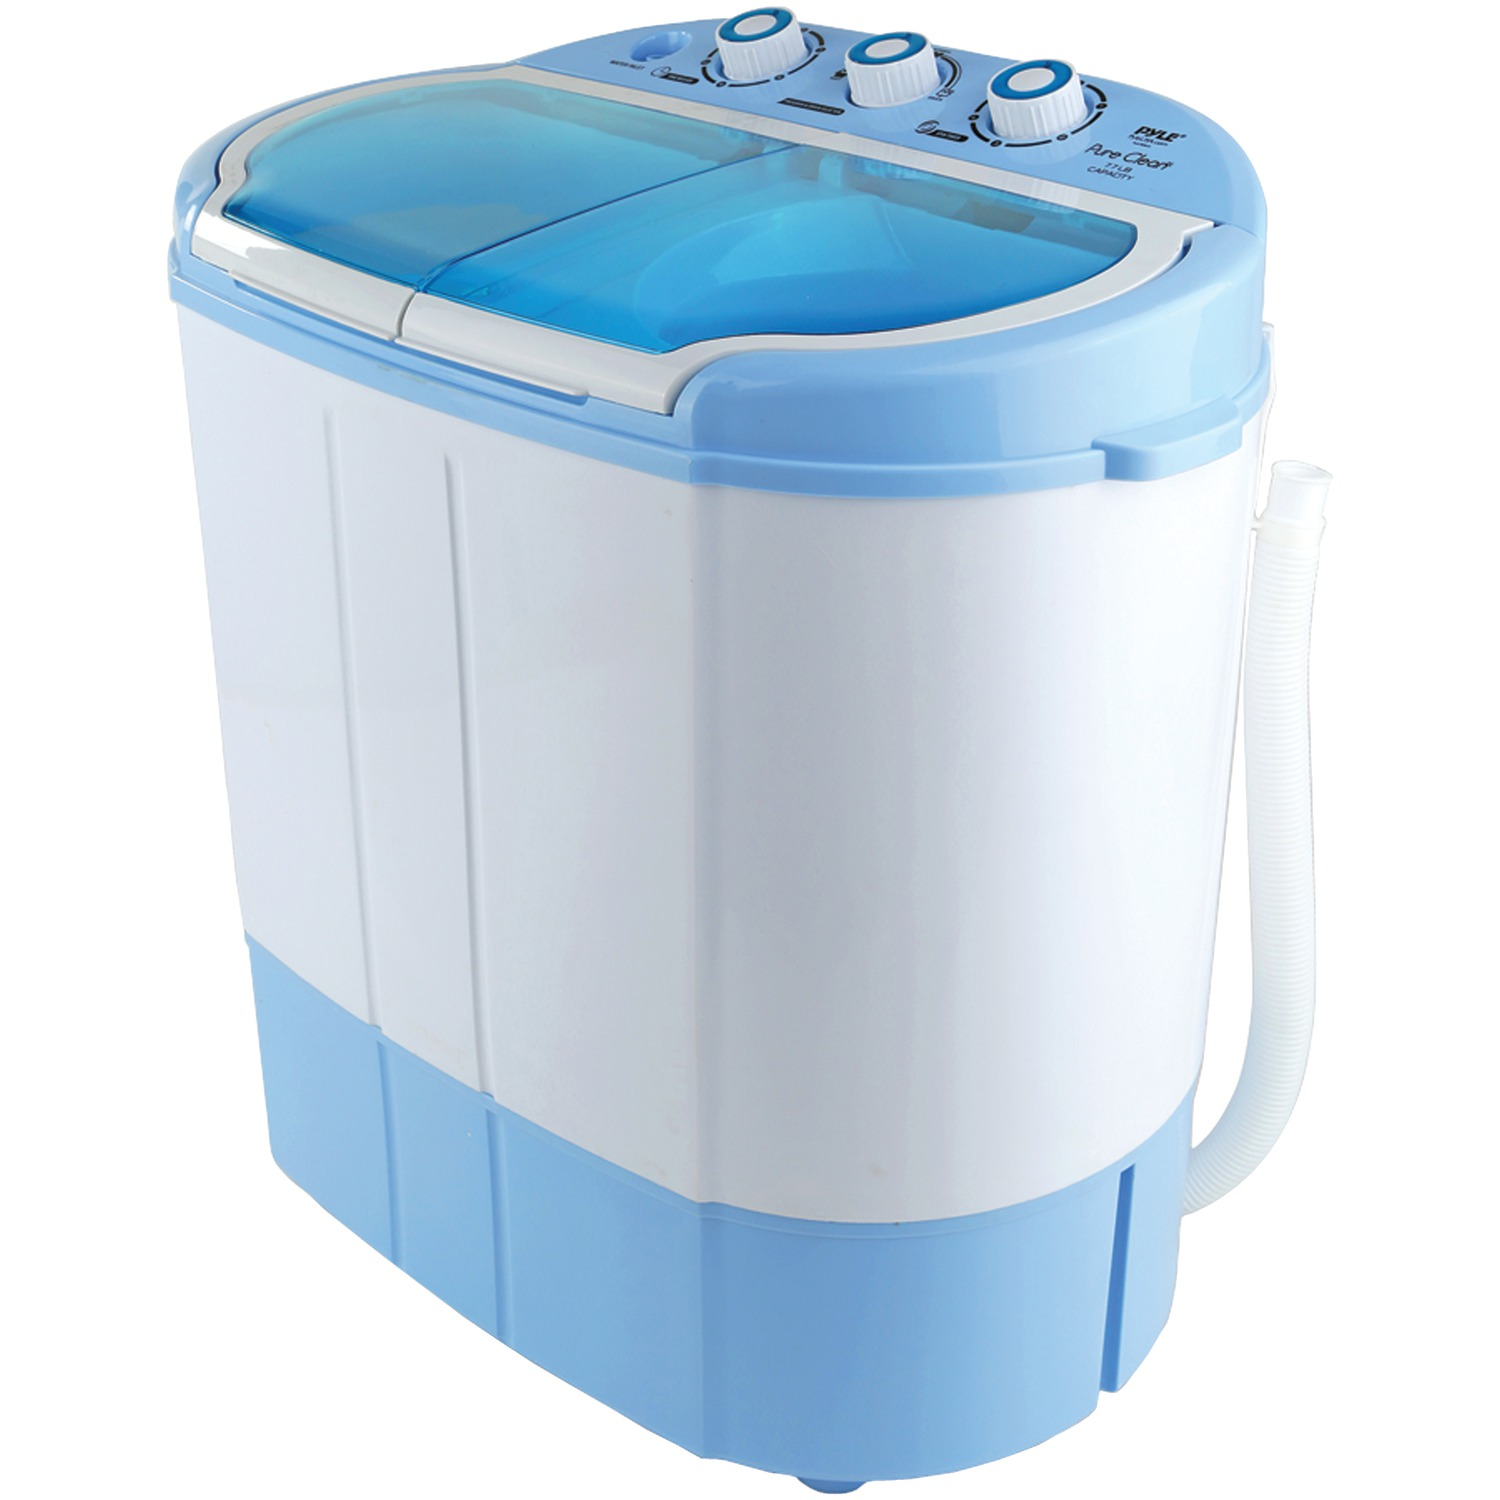 PYLE HOME PUCWM22  Compact  Portable Washer  Dryer